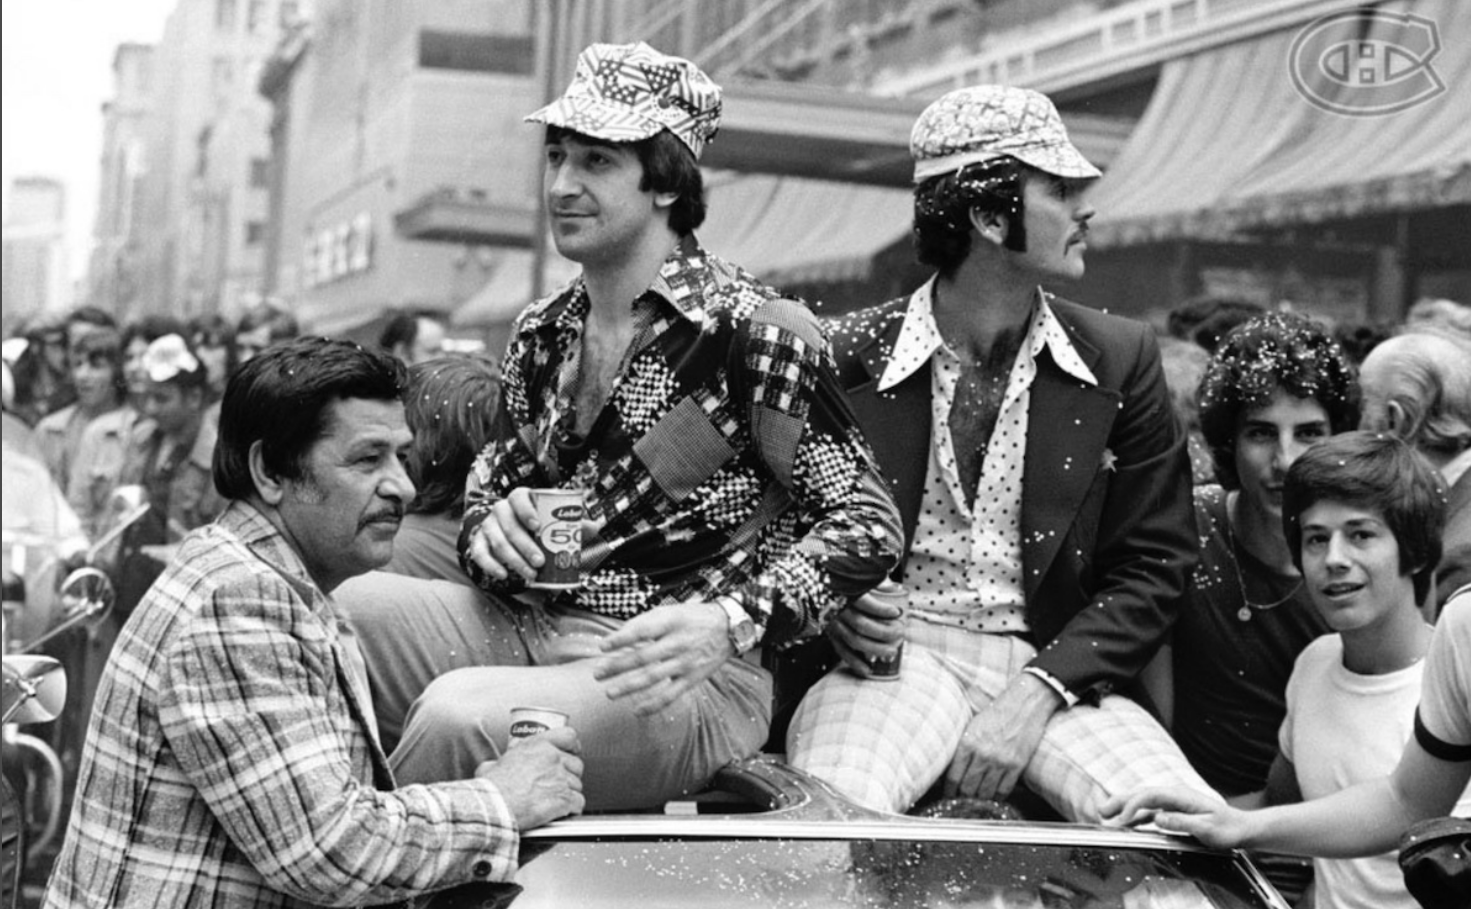 Two men on a float in absurd 1970s outfits